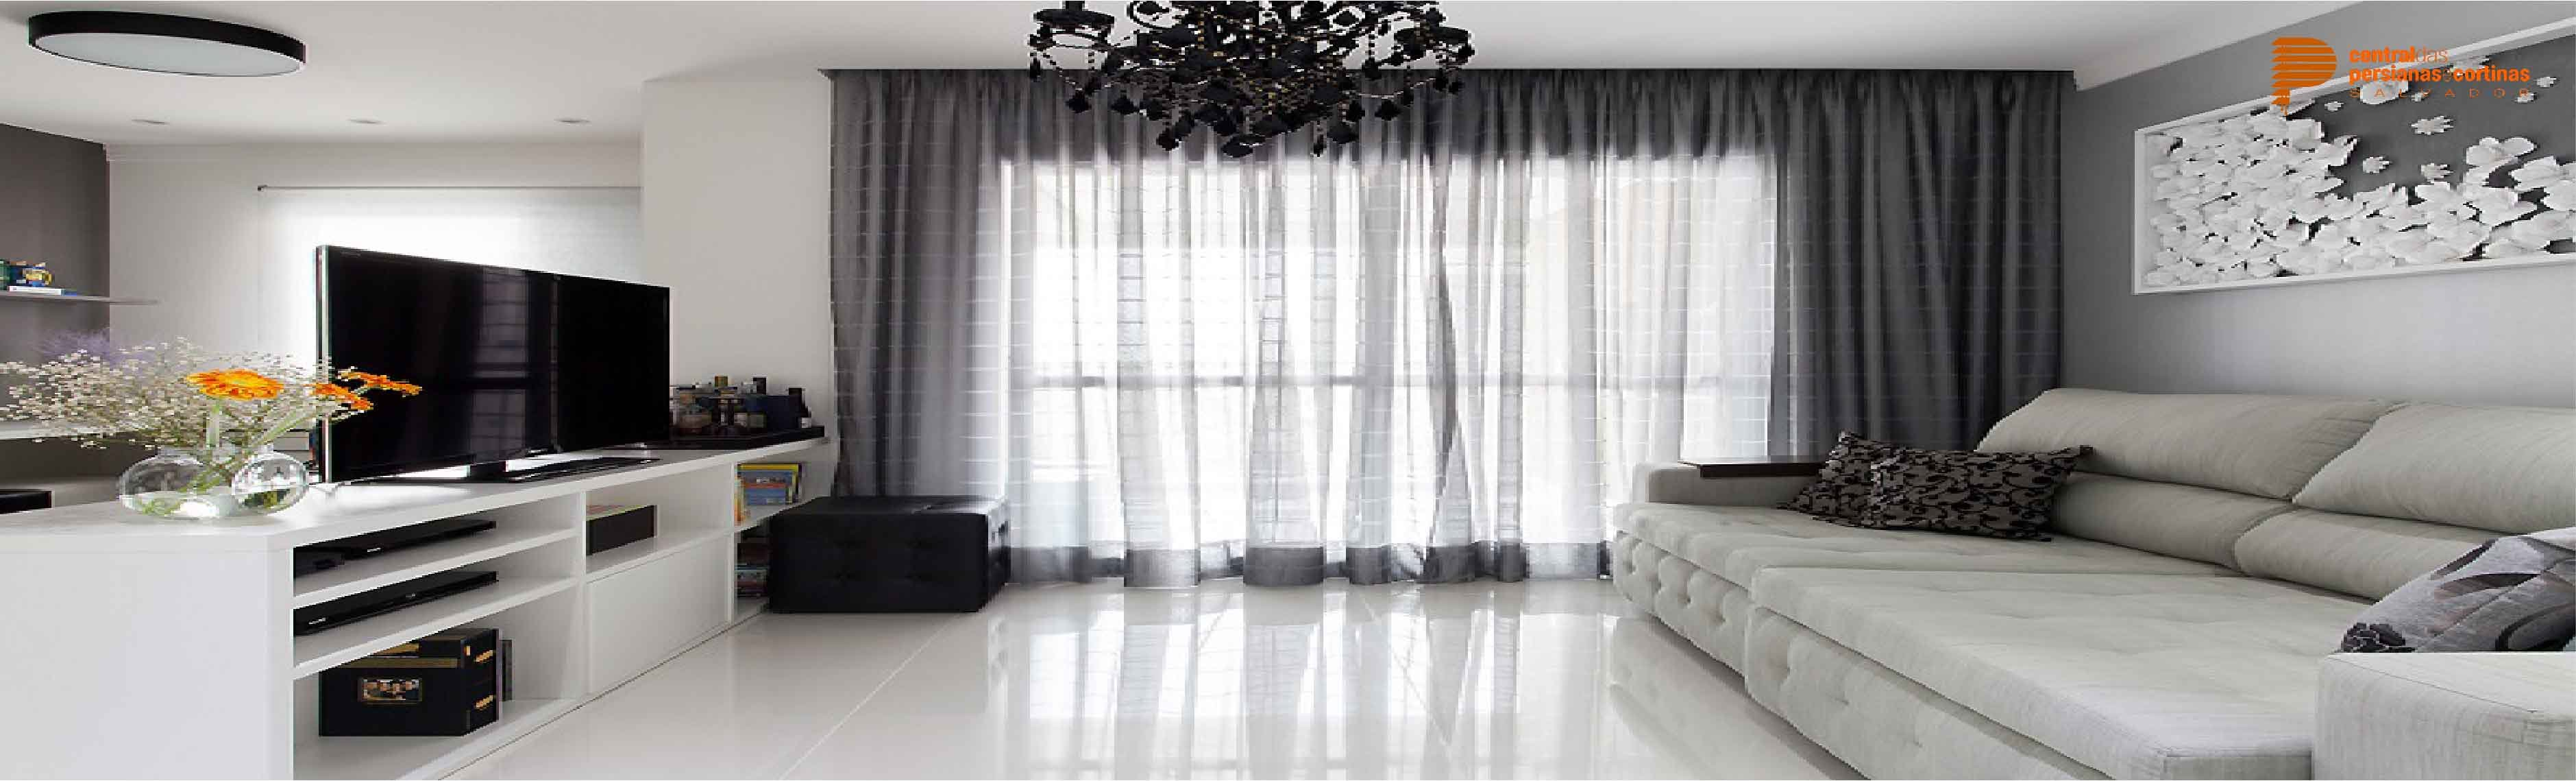 Central Das Persianas E Cortinas Salvador F Brica De  ~ Quarto Estilo Antigo E Persiana Romana Quarto